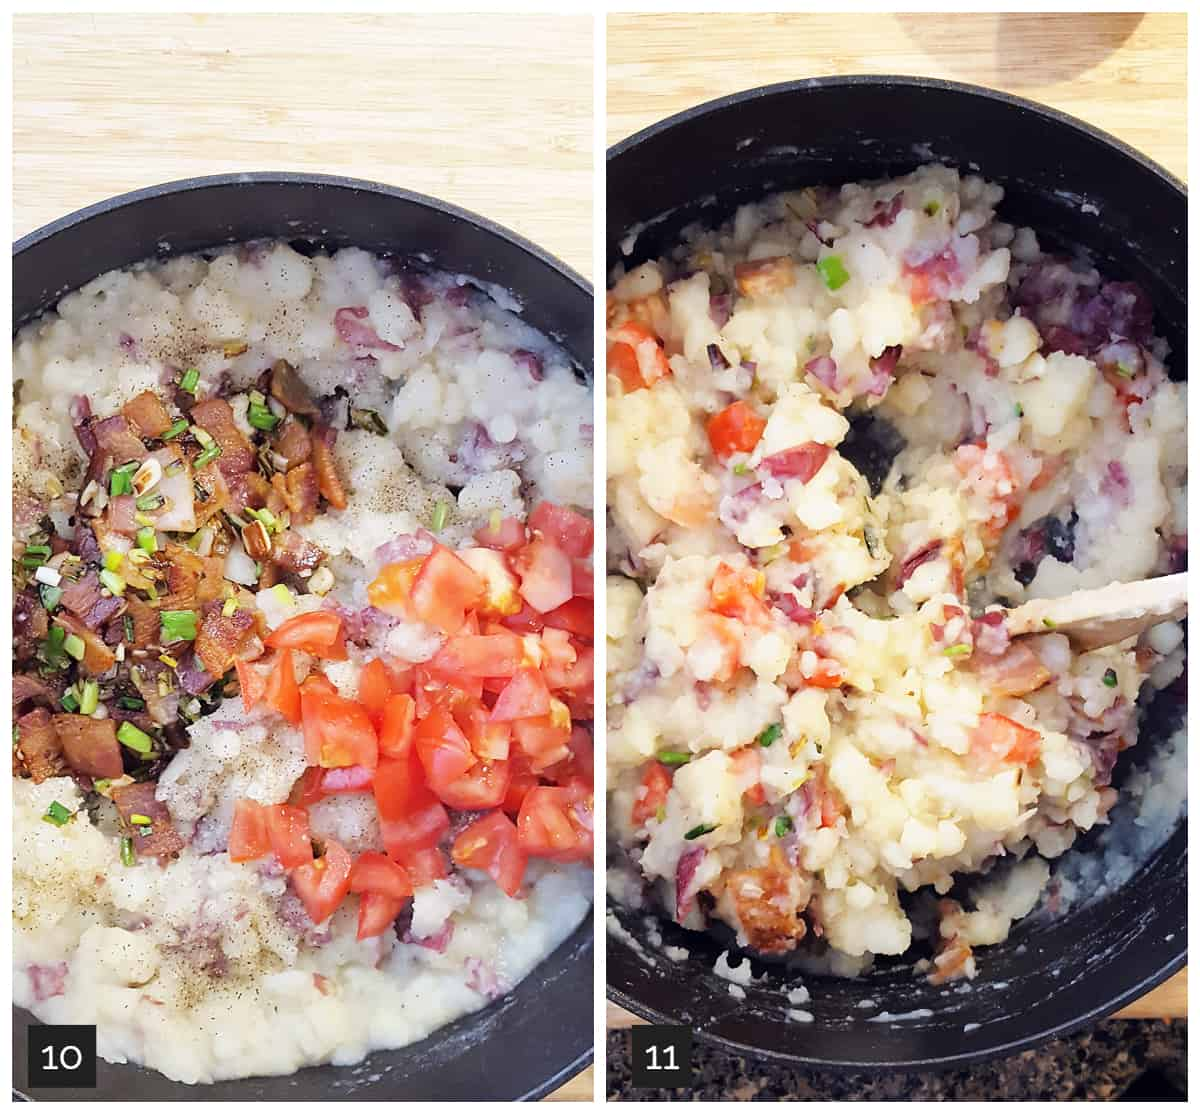 Left: bacon, onions, and tomatoes added to mashed potatoes; Right: bacon and tomatoes folded into mashed potatoes.